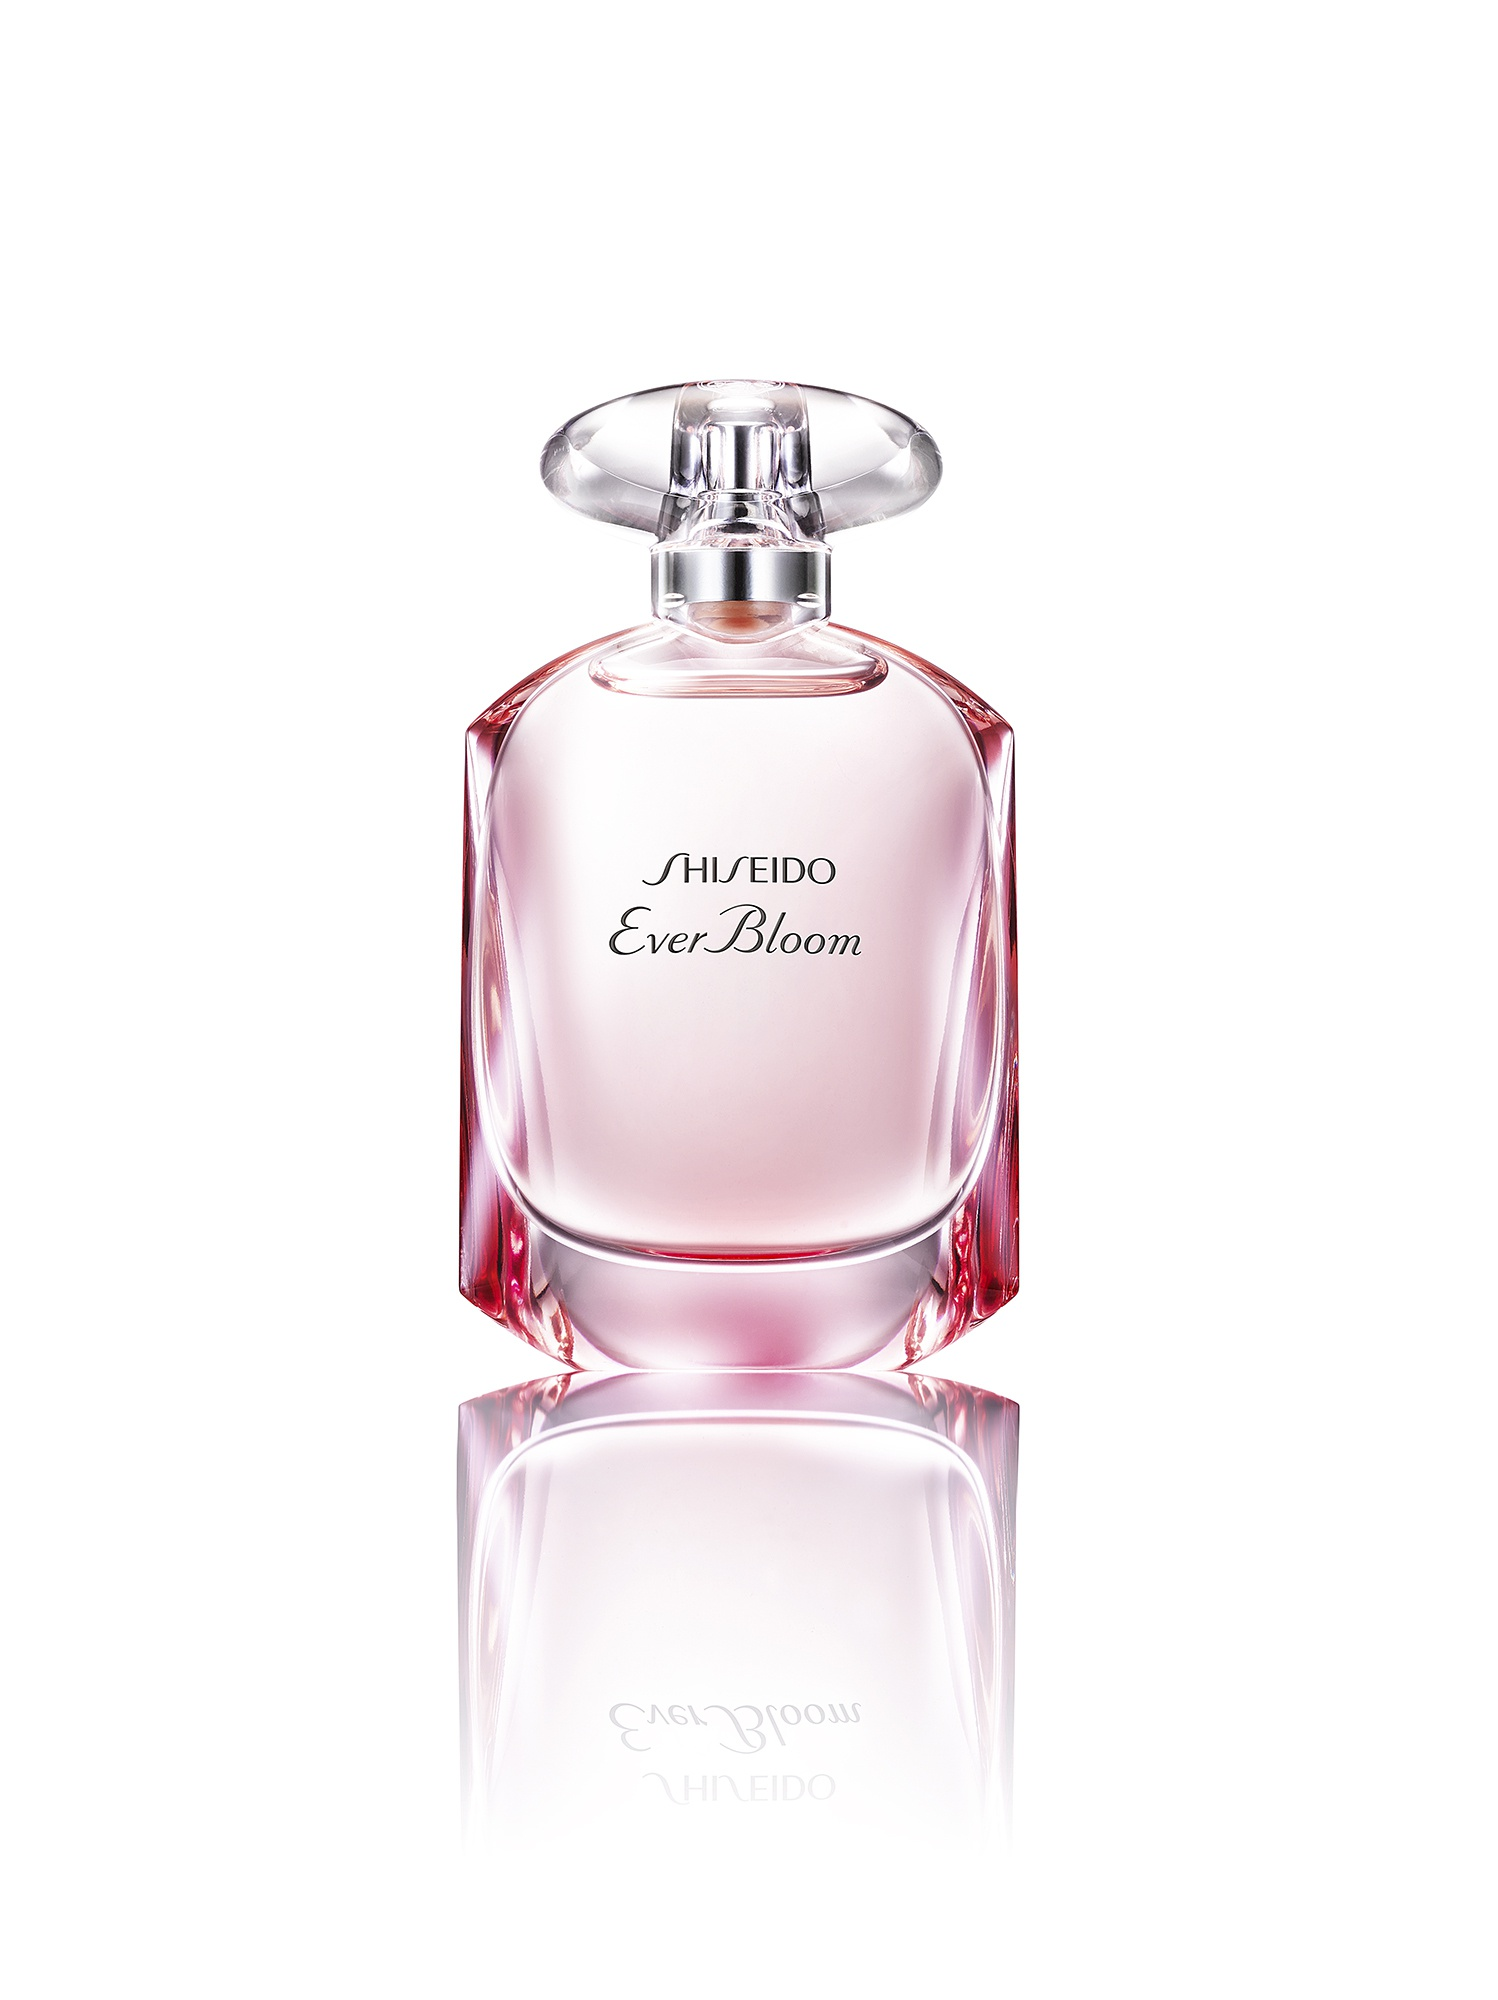 Shiseido ever bloom eau de parfum 90ml vaporizador